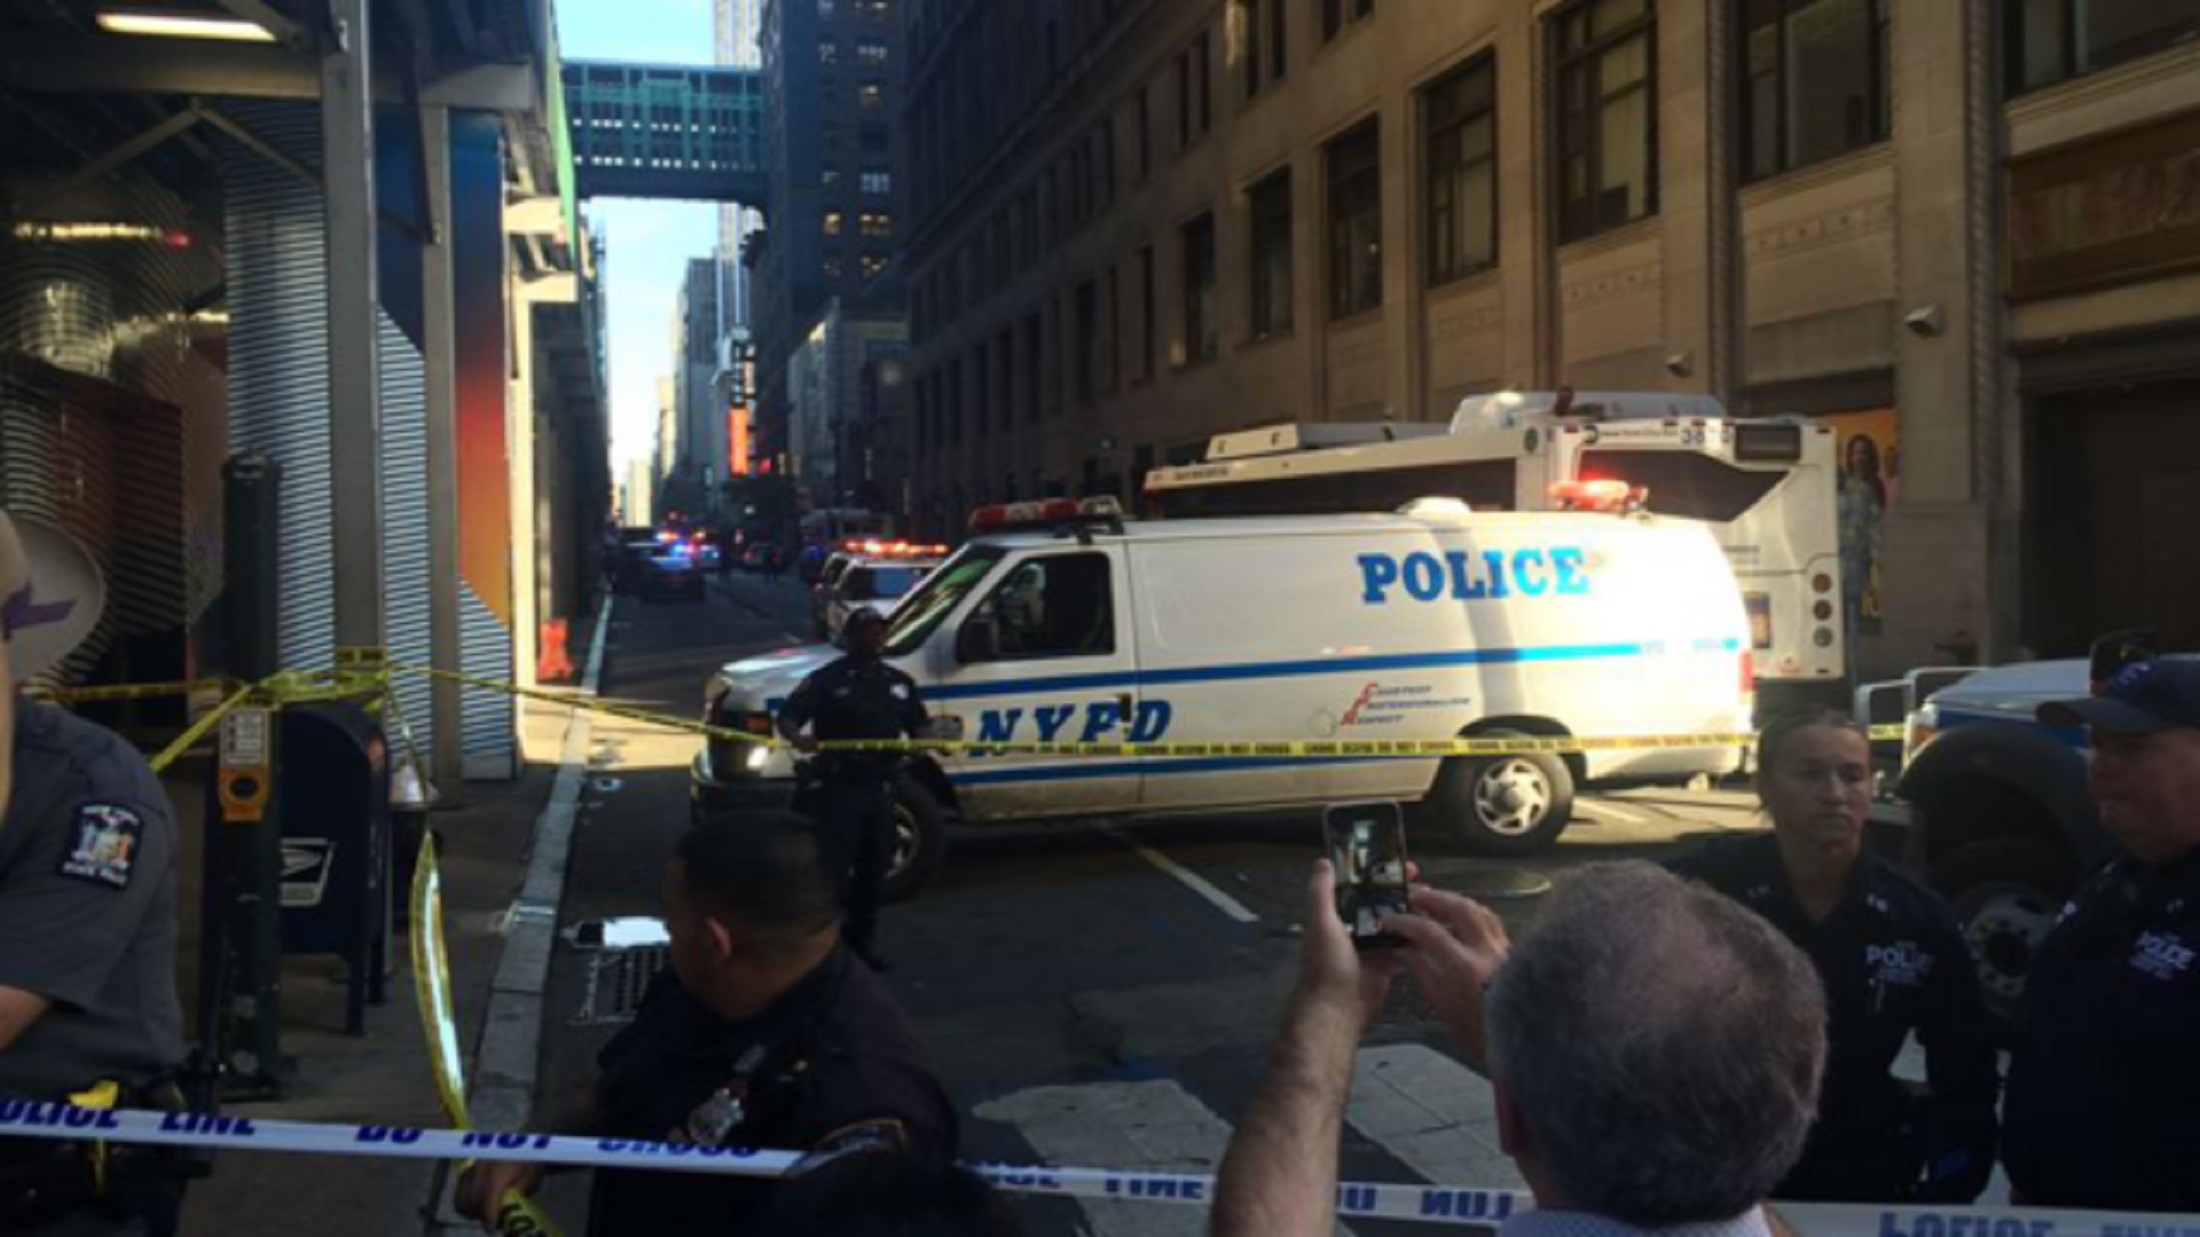 Suspect Shot in Midtown After Attack on NYPD Officer with Meat Cleaver